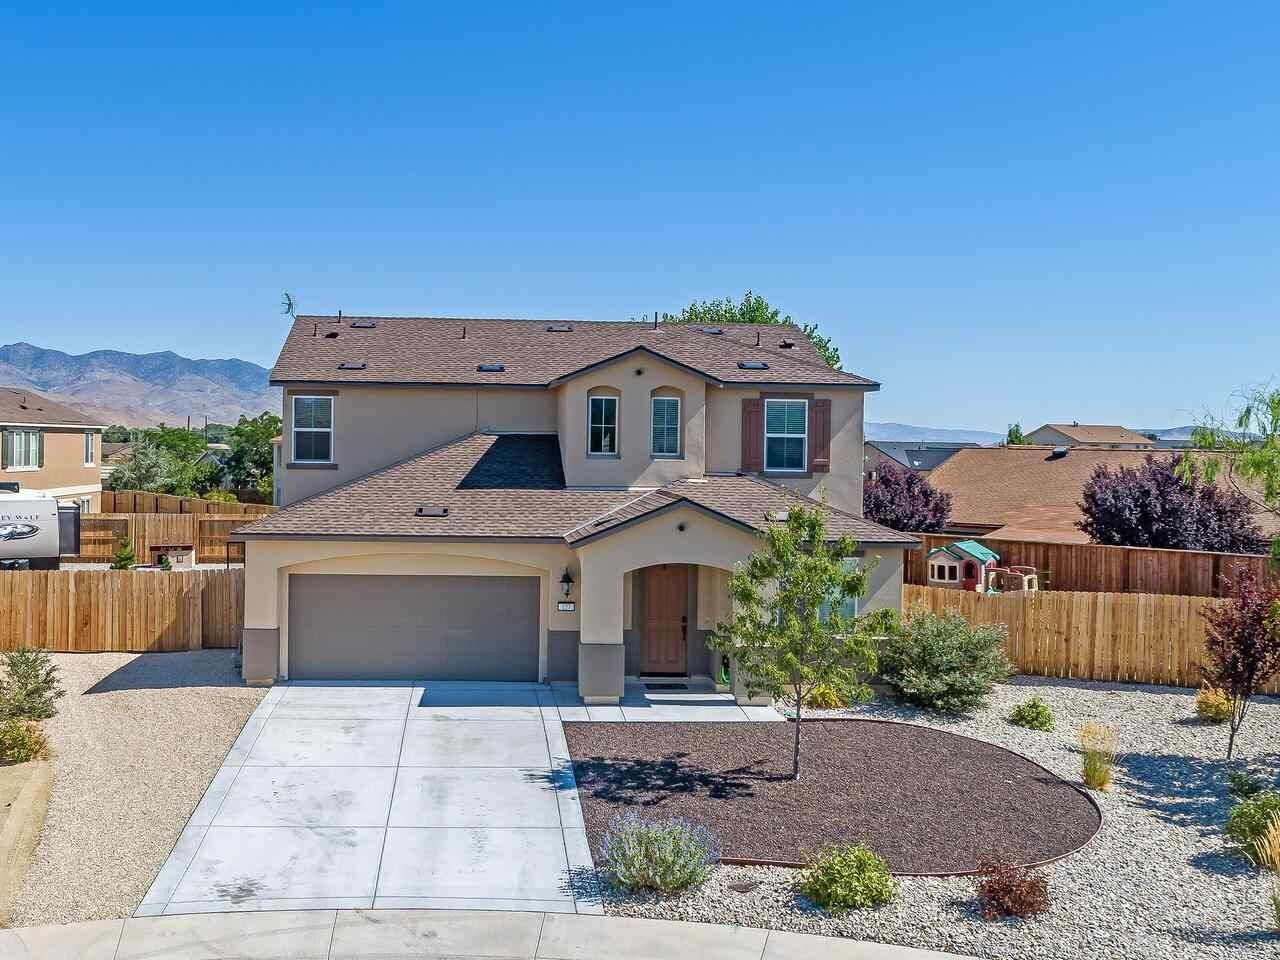 127 Chalice Avenue, Dayton, NV  4 Bed | 3 Bath | 2,288 sqft | $399,900 Victoria Weiser | 775.232.8929